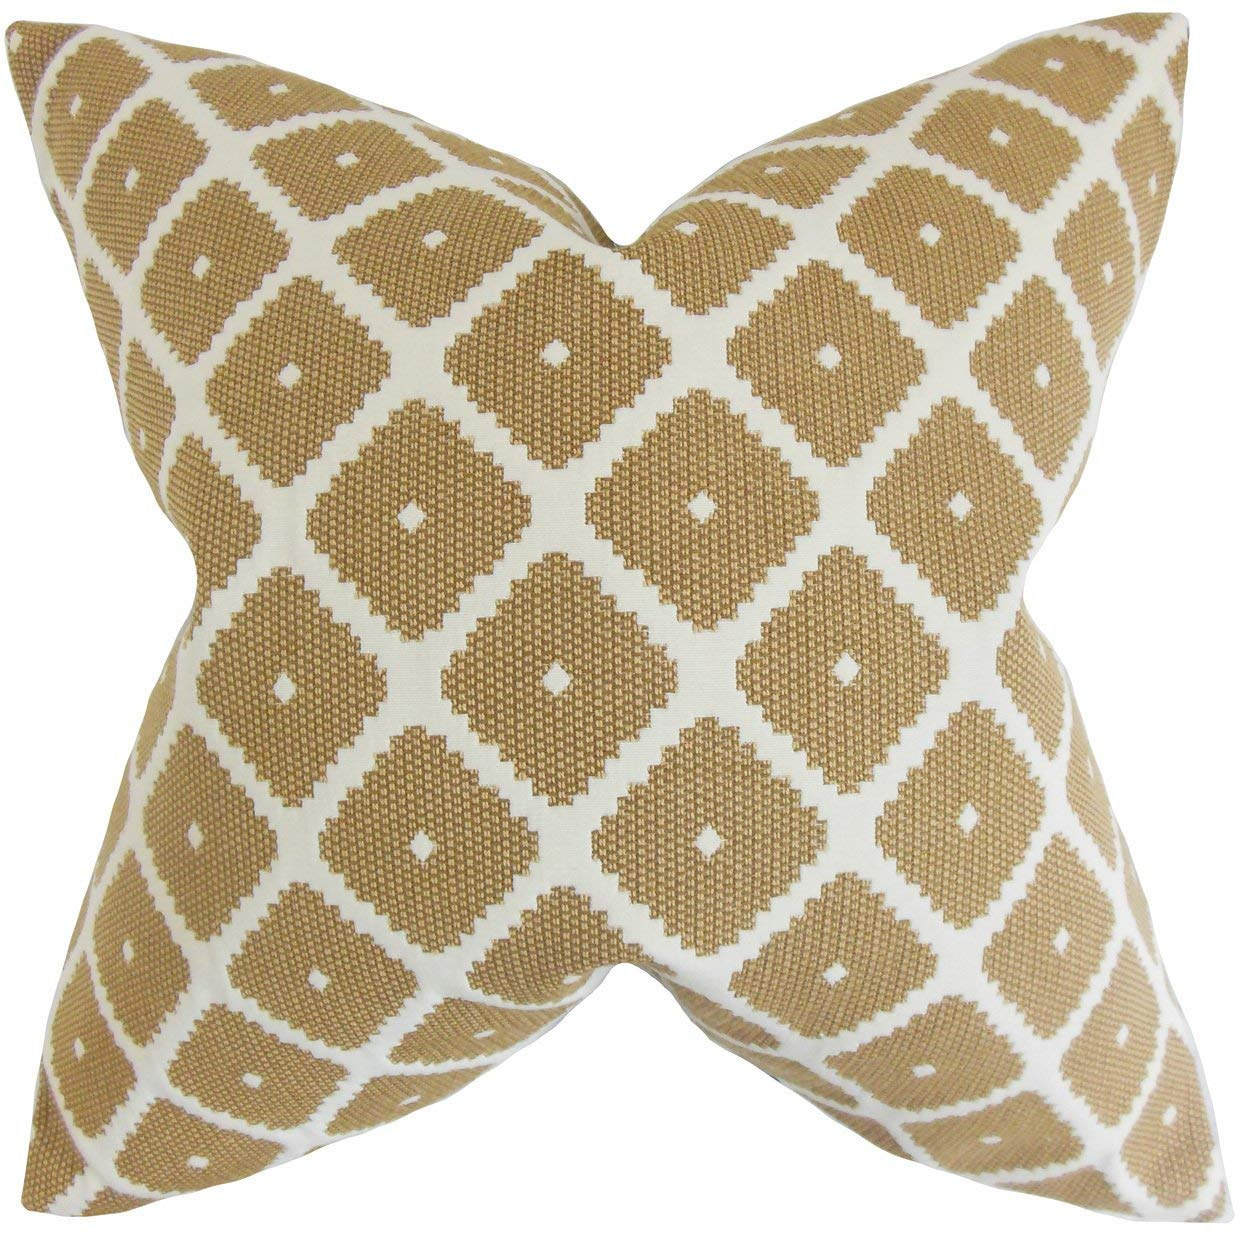 The Pillow Collection Fallon Geometric Copper Down Filled Throw Pillow